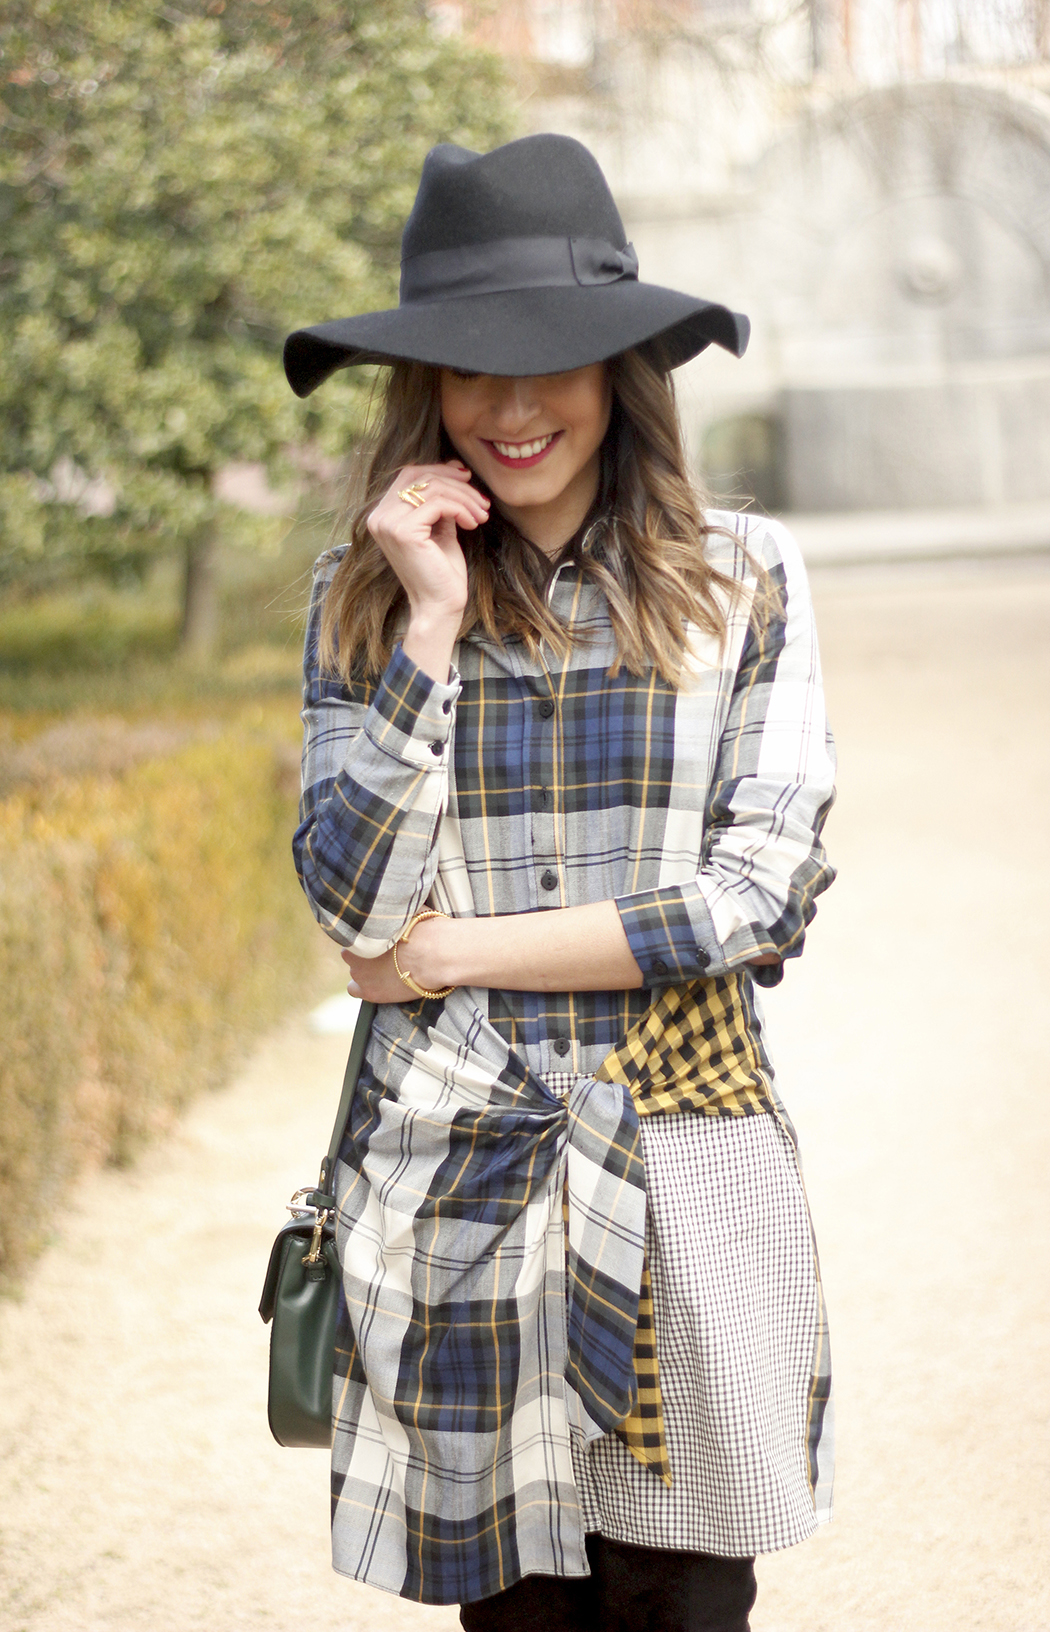 Tartan shirt dress zara over the knee boots mango hat green bag outfit fashion16